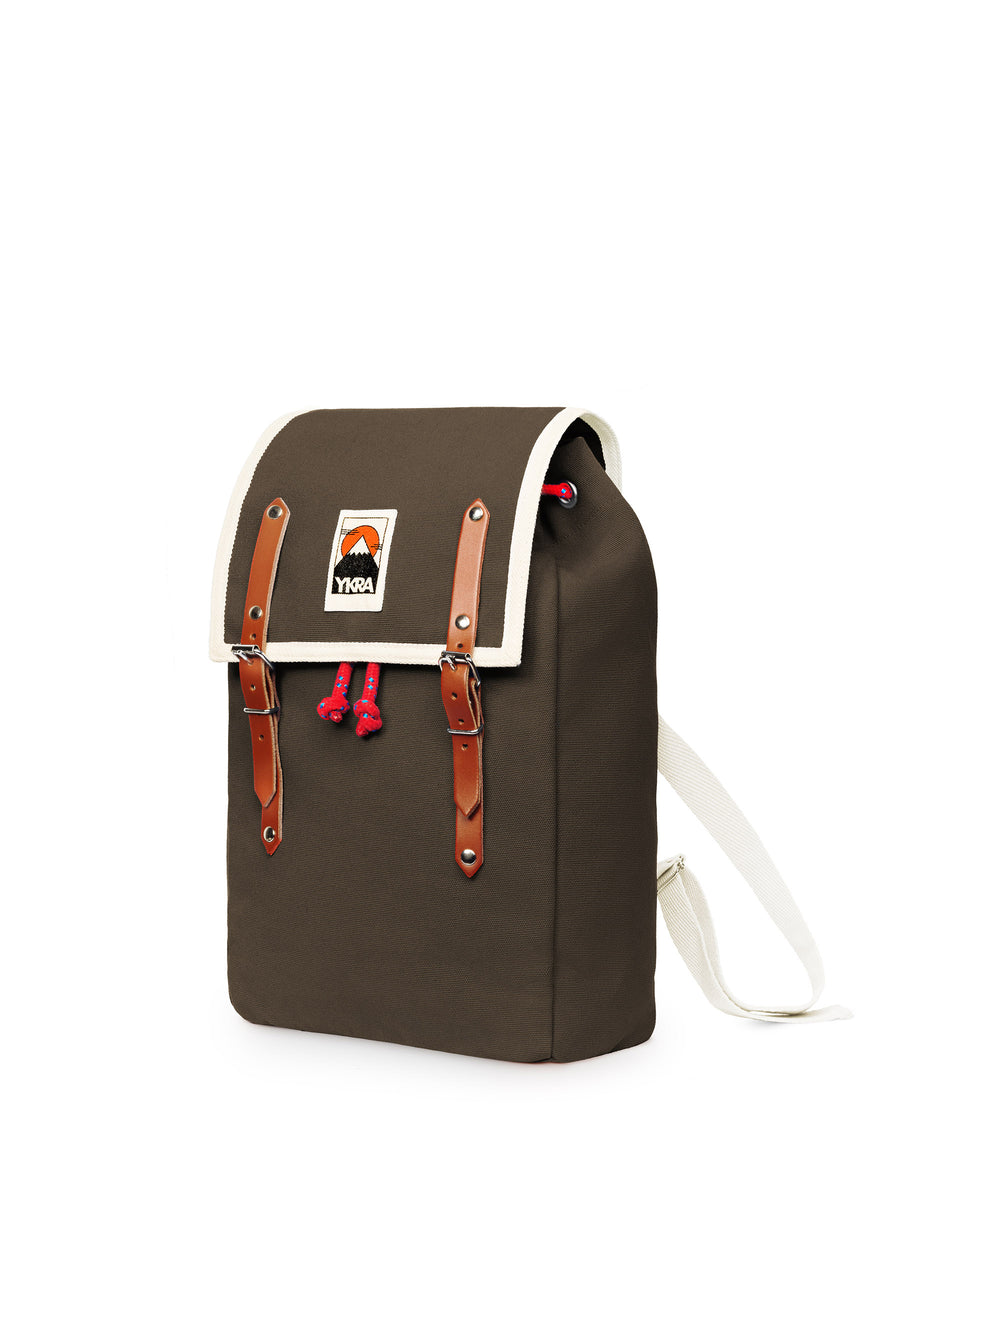 Matra Mini Khaki with Cotton Strap